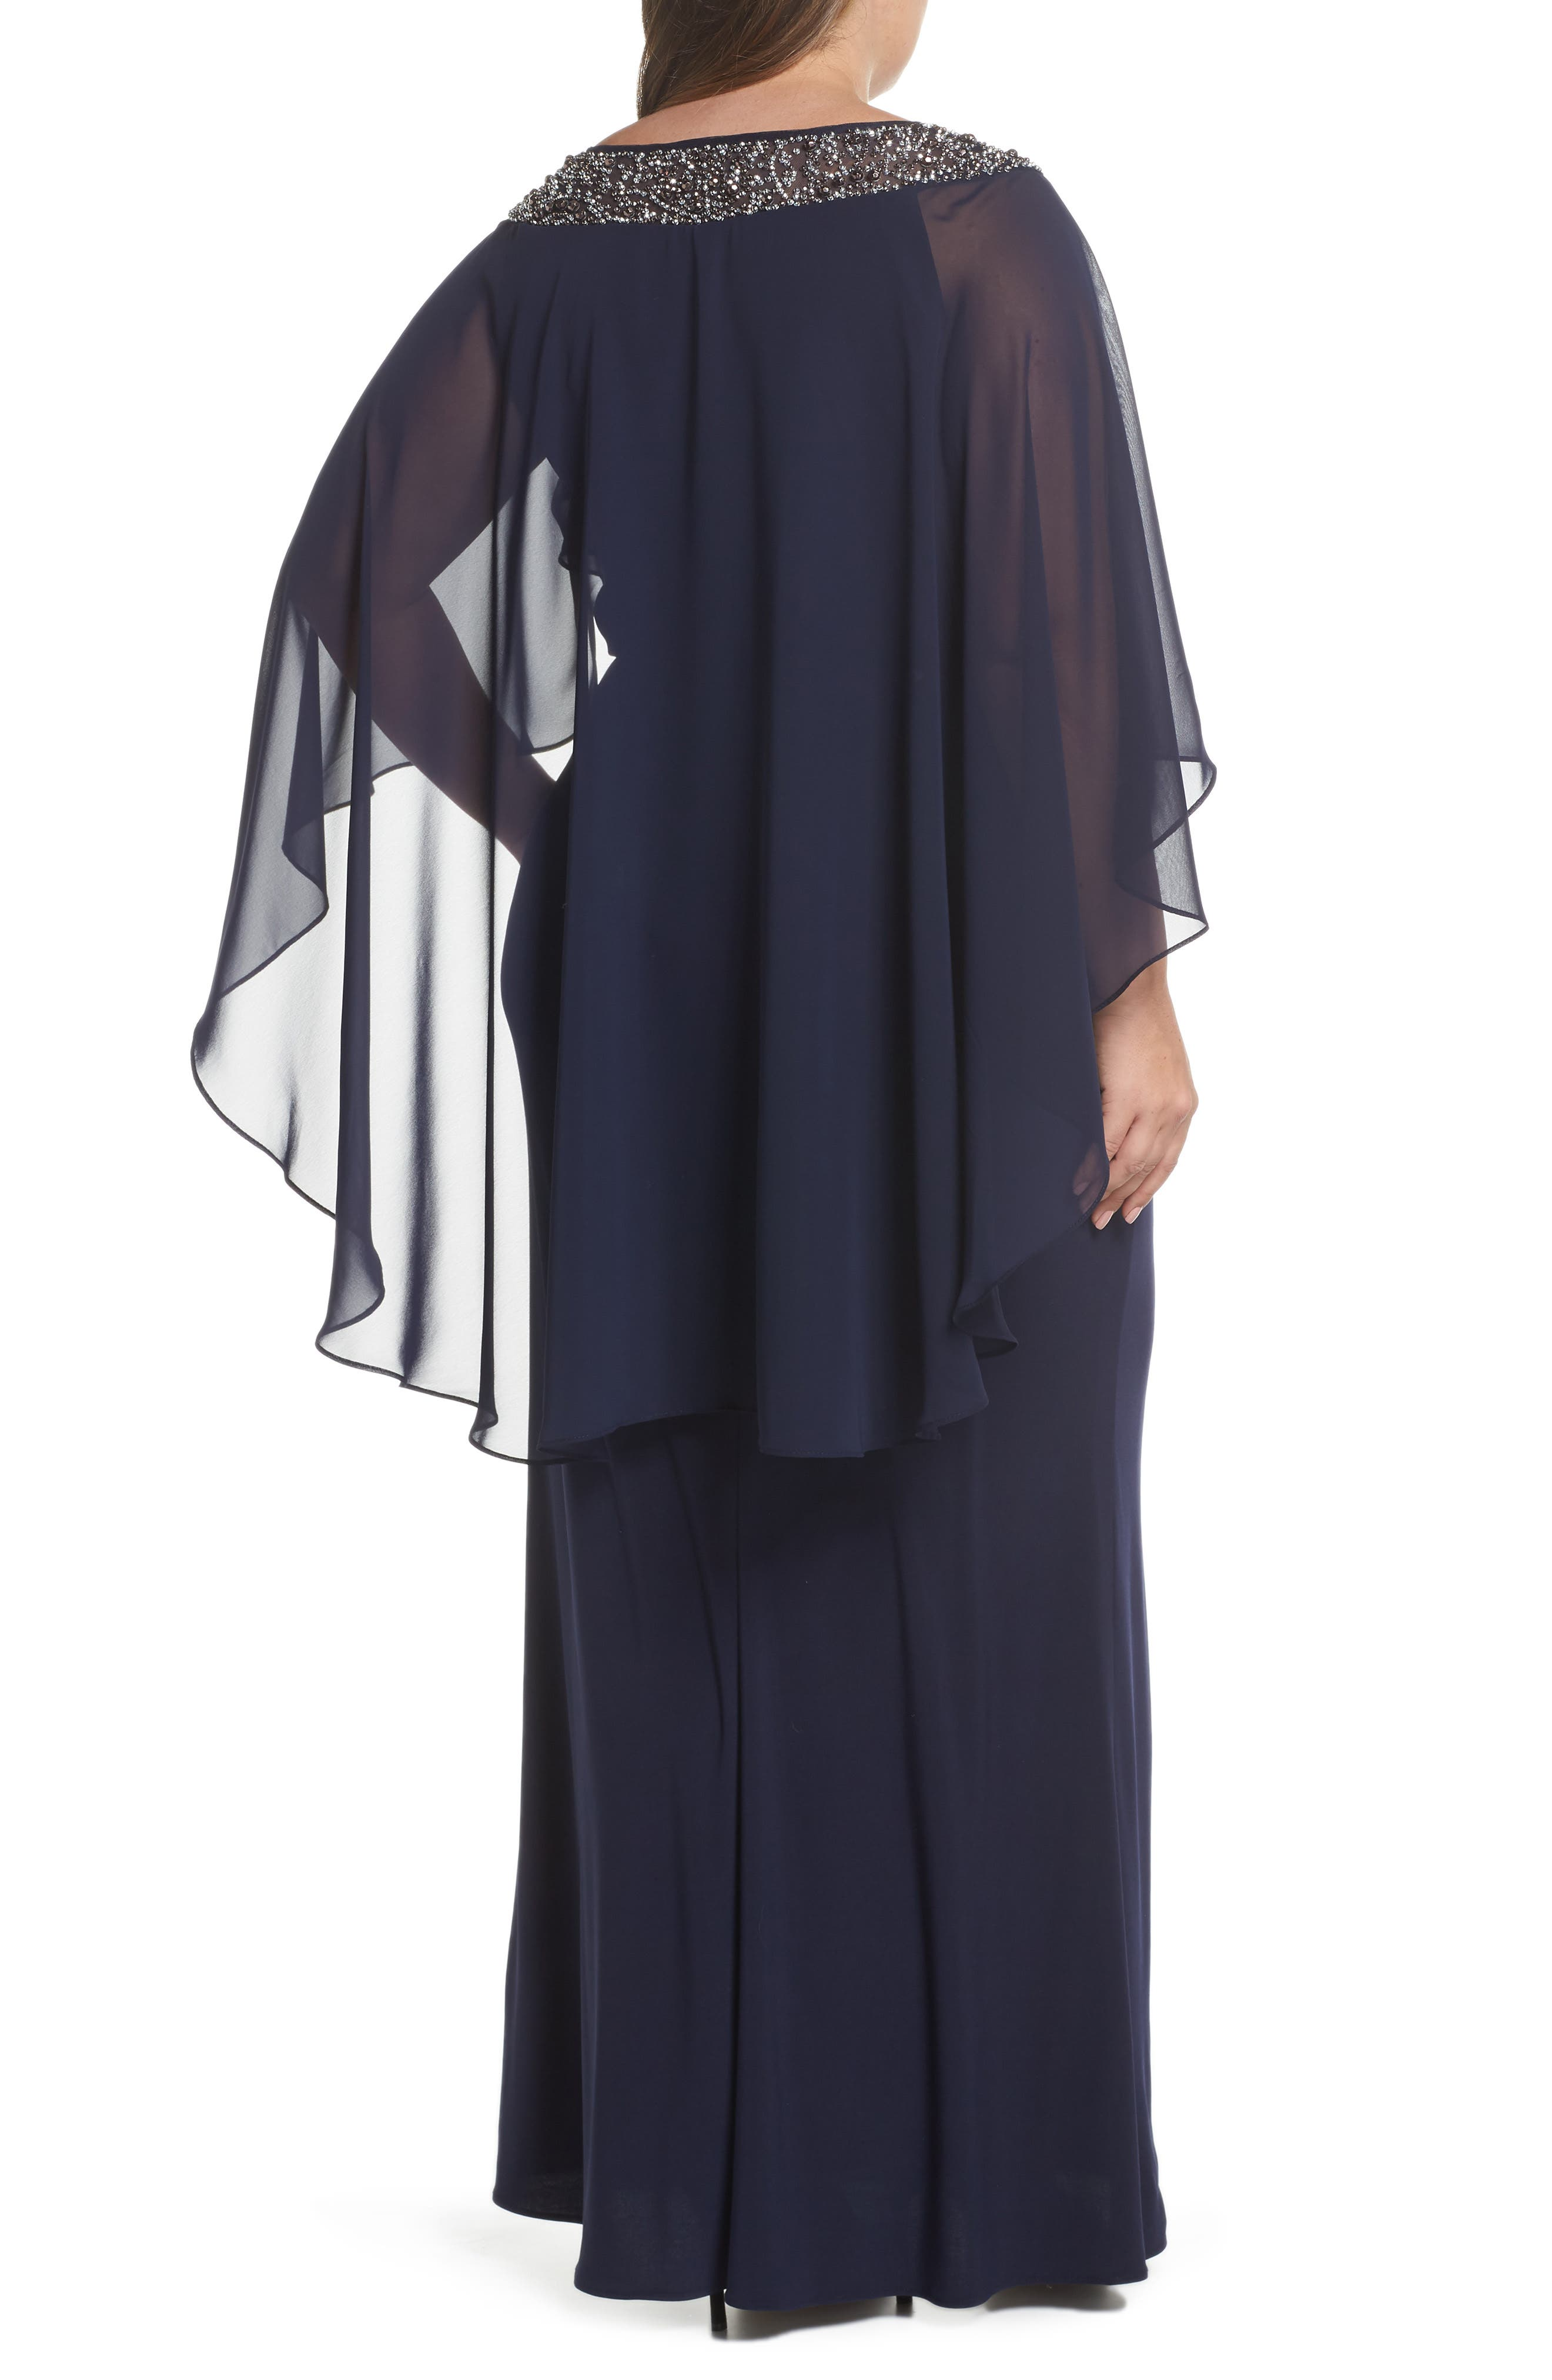 XSCAPE, Chiffon Cape Sleeve Beaded Neckline Gown, Alternate thumbnail 2, color, NAVY/ SILVER